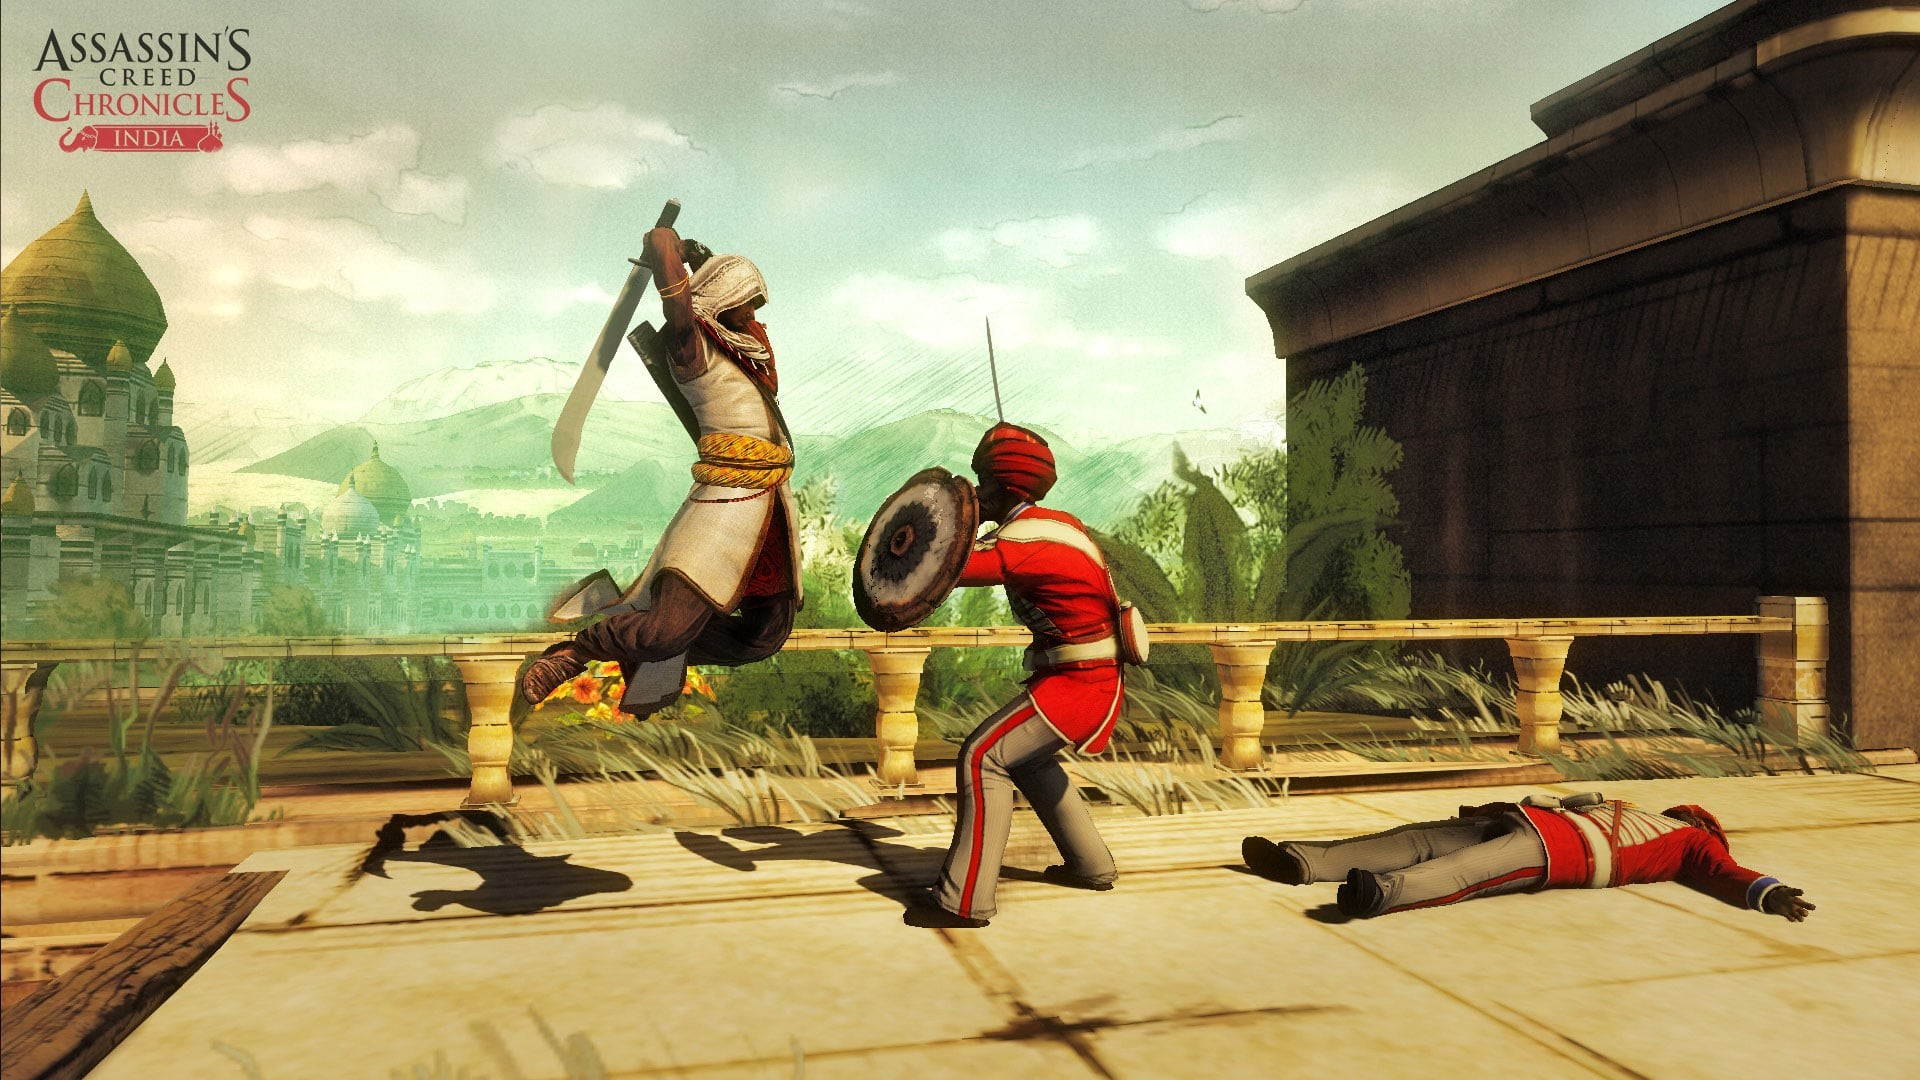 Rachel noy assassin s creed chronicles india 4